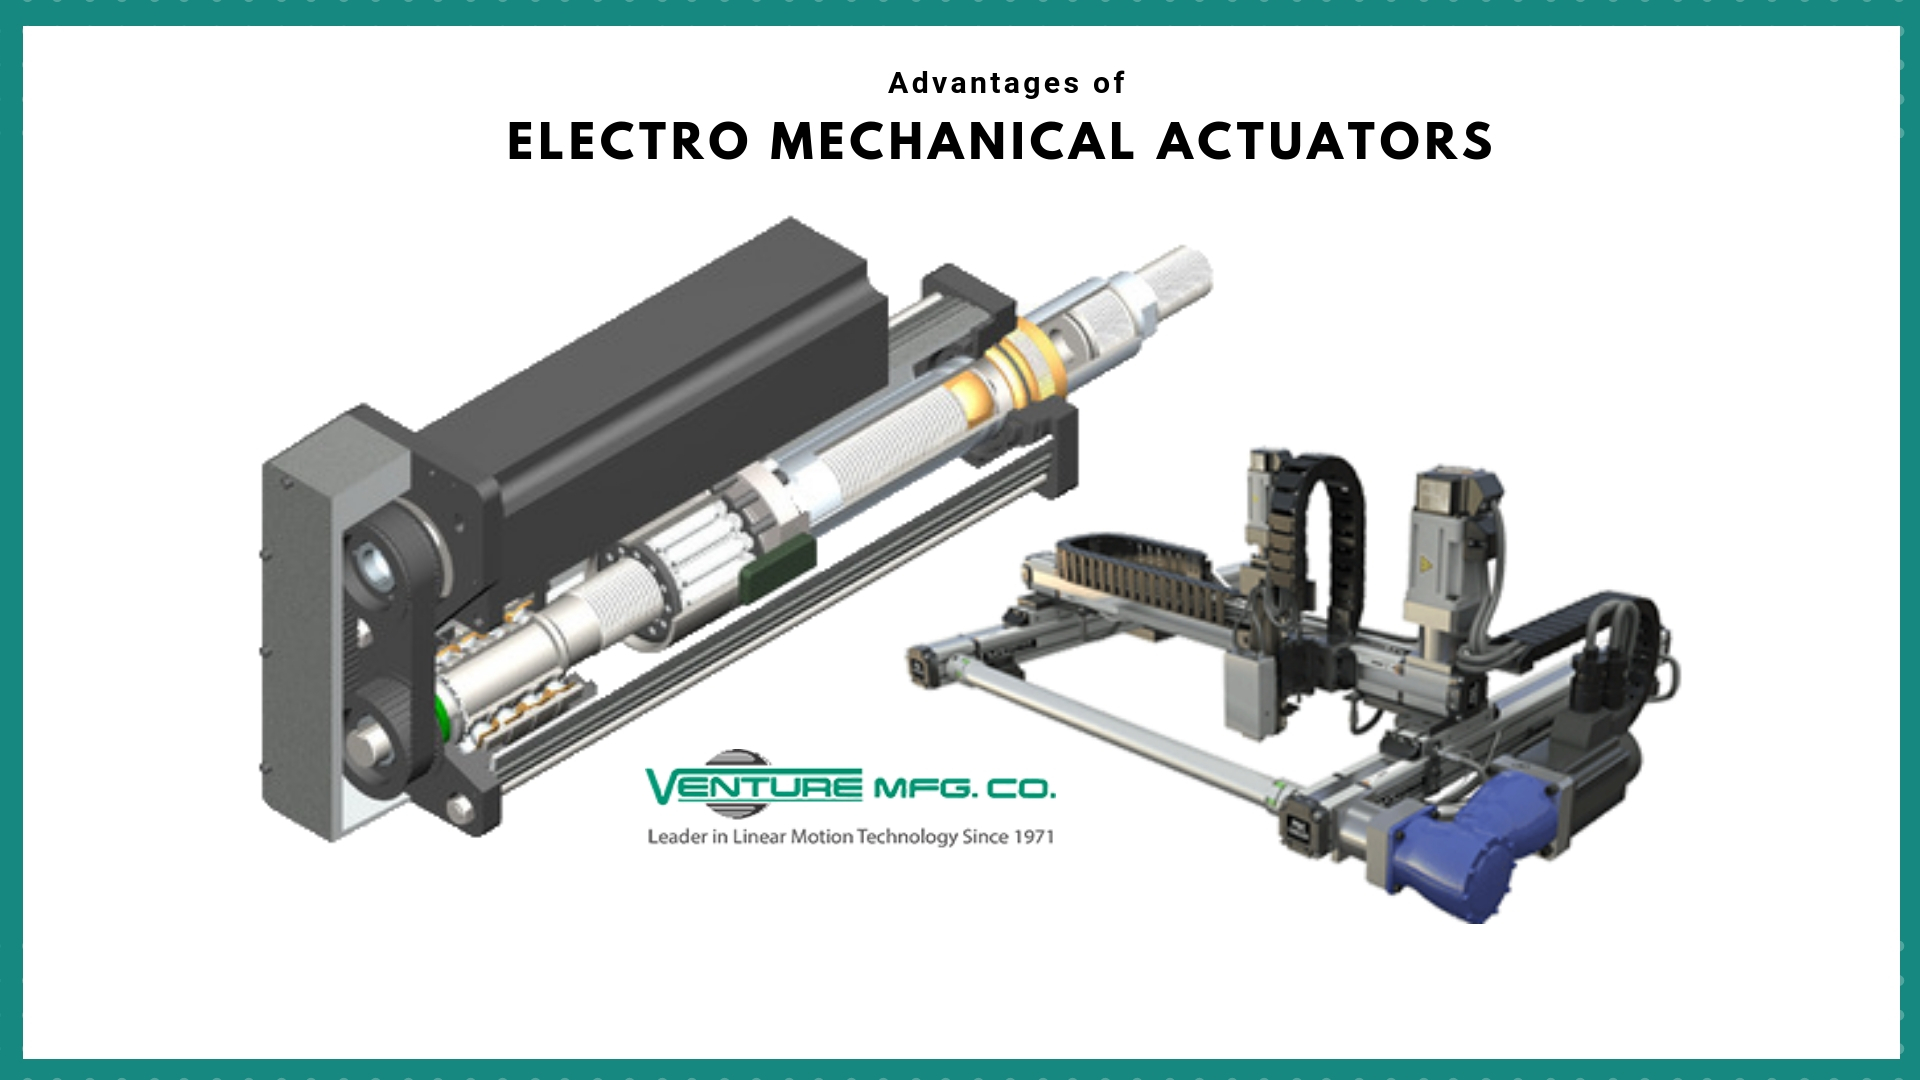 Advantages of Electro-Mechanical Actuators